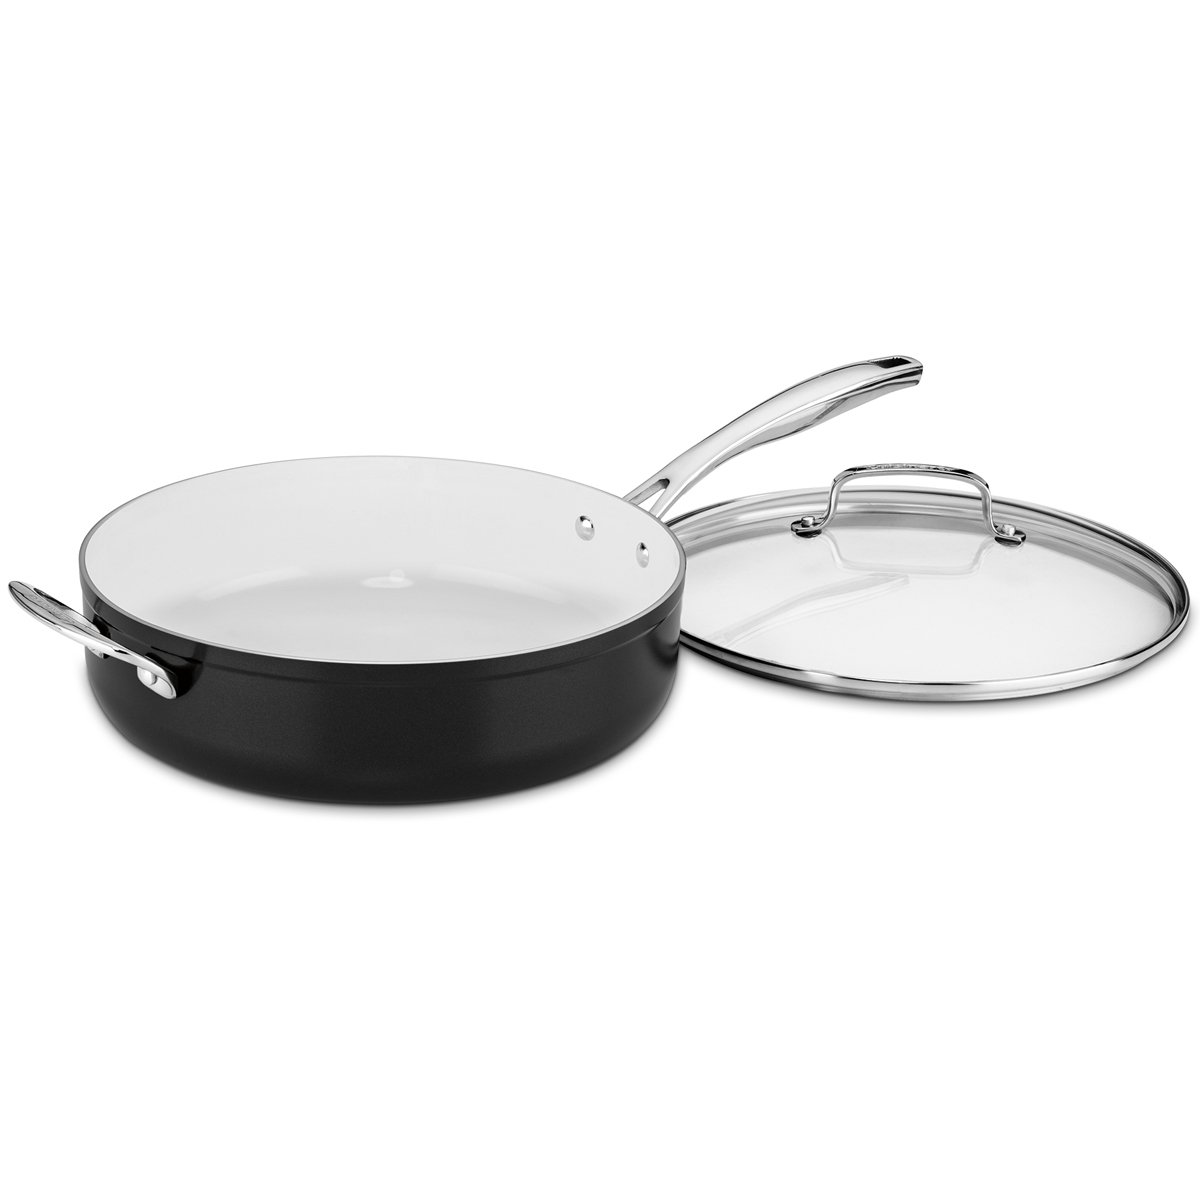 Amazon.com: Cuisinart Elements 10piece Ceramica Polar White Non Stick cookware: Kitchen & Dining